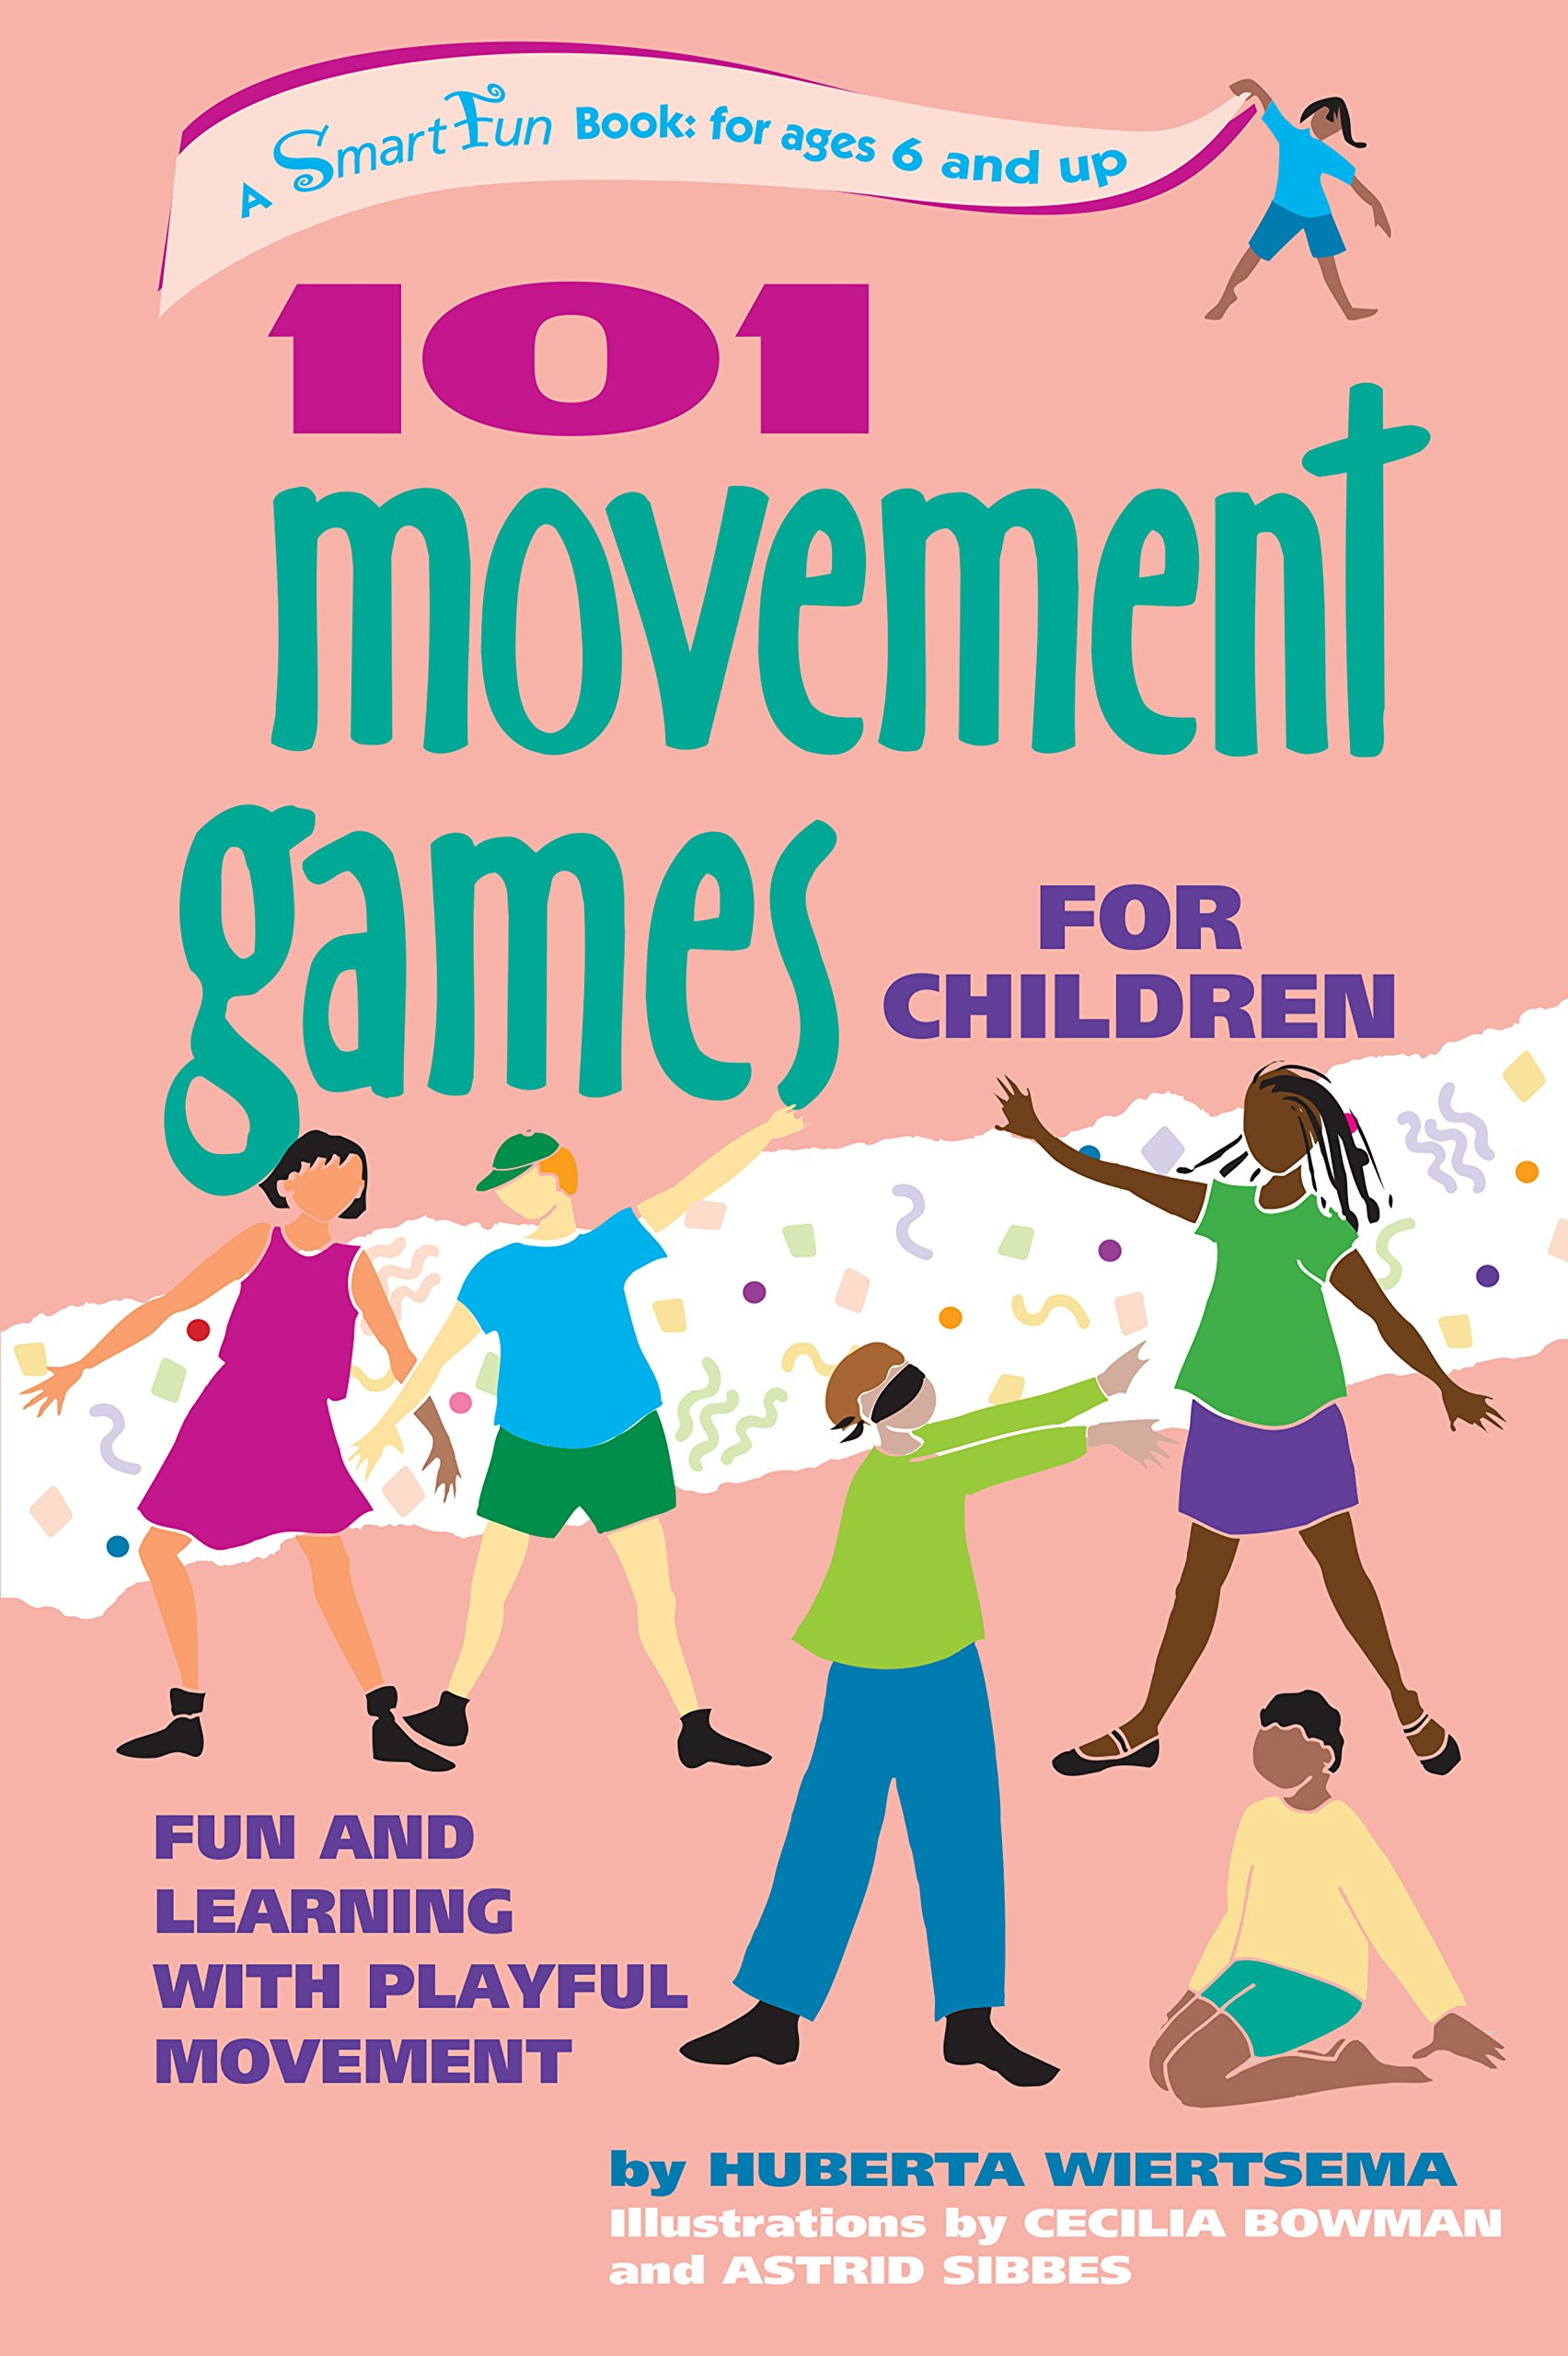 101 Movement Games for Children: Fun and Learning with Playful Movement  (SmartFun Books): Huberta Wiertsema, Cecilia Bowman, Astrid Sibbes:  9780897933469: ...